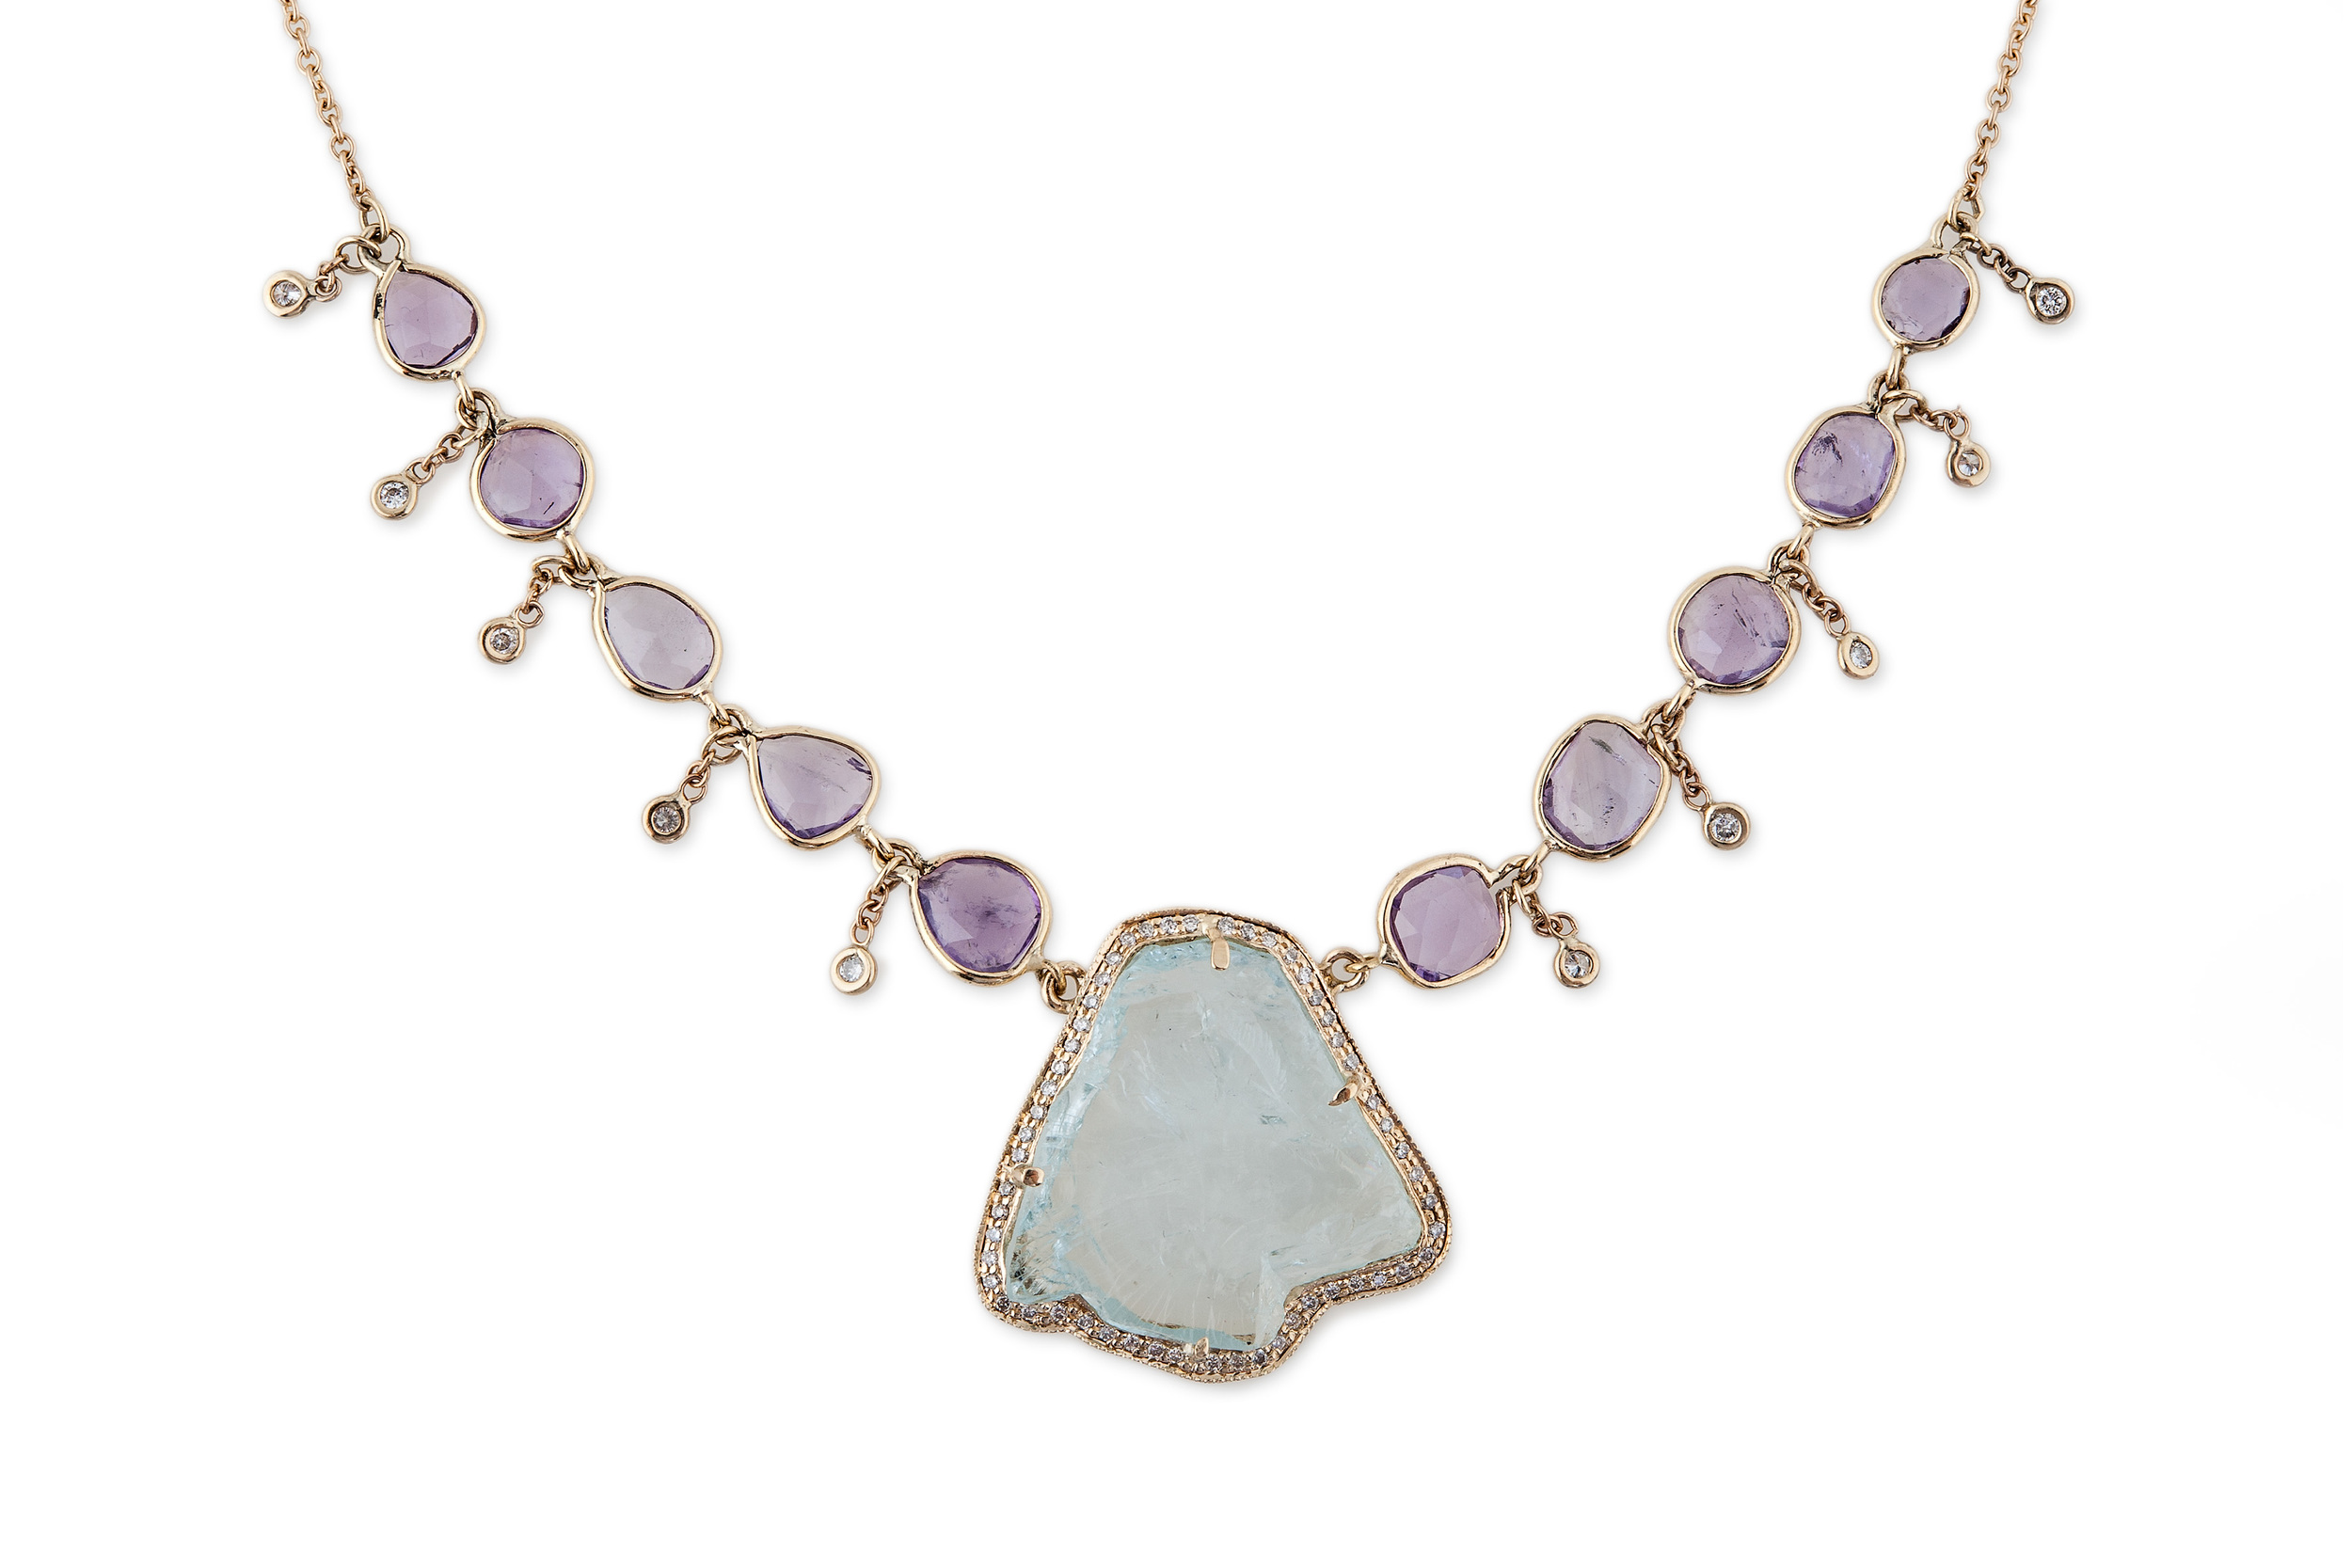 Freeform Aquamarine and Amethyst Shaker Necklace,$8,000, available at  Broken English .